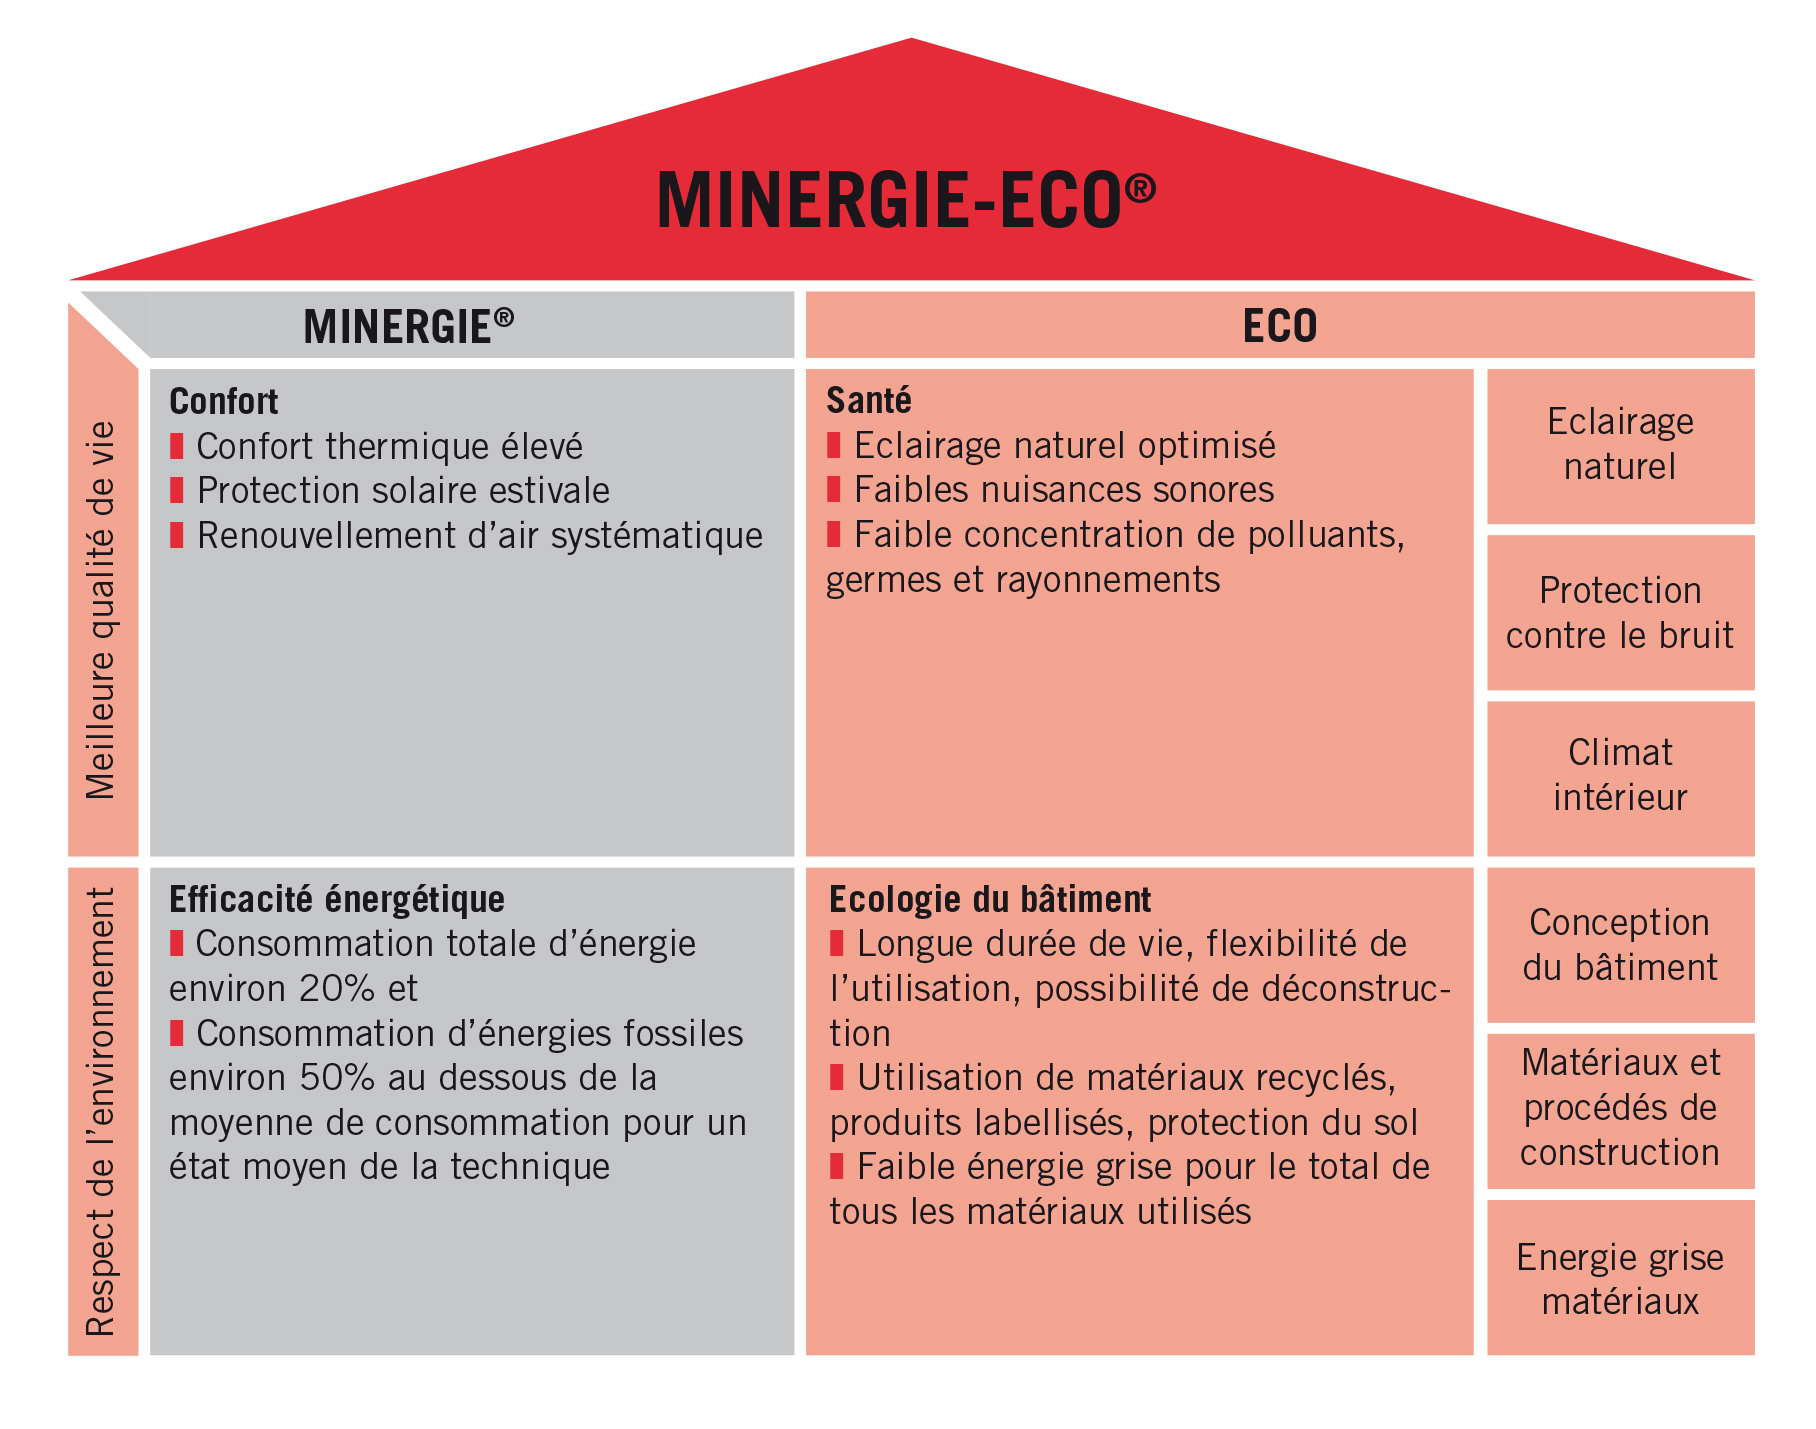 minergie_eco_f_11.indd